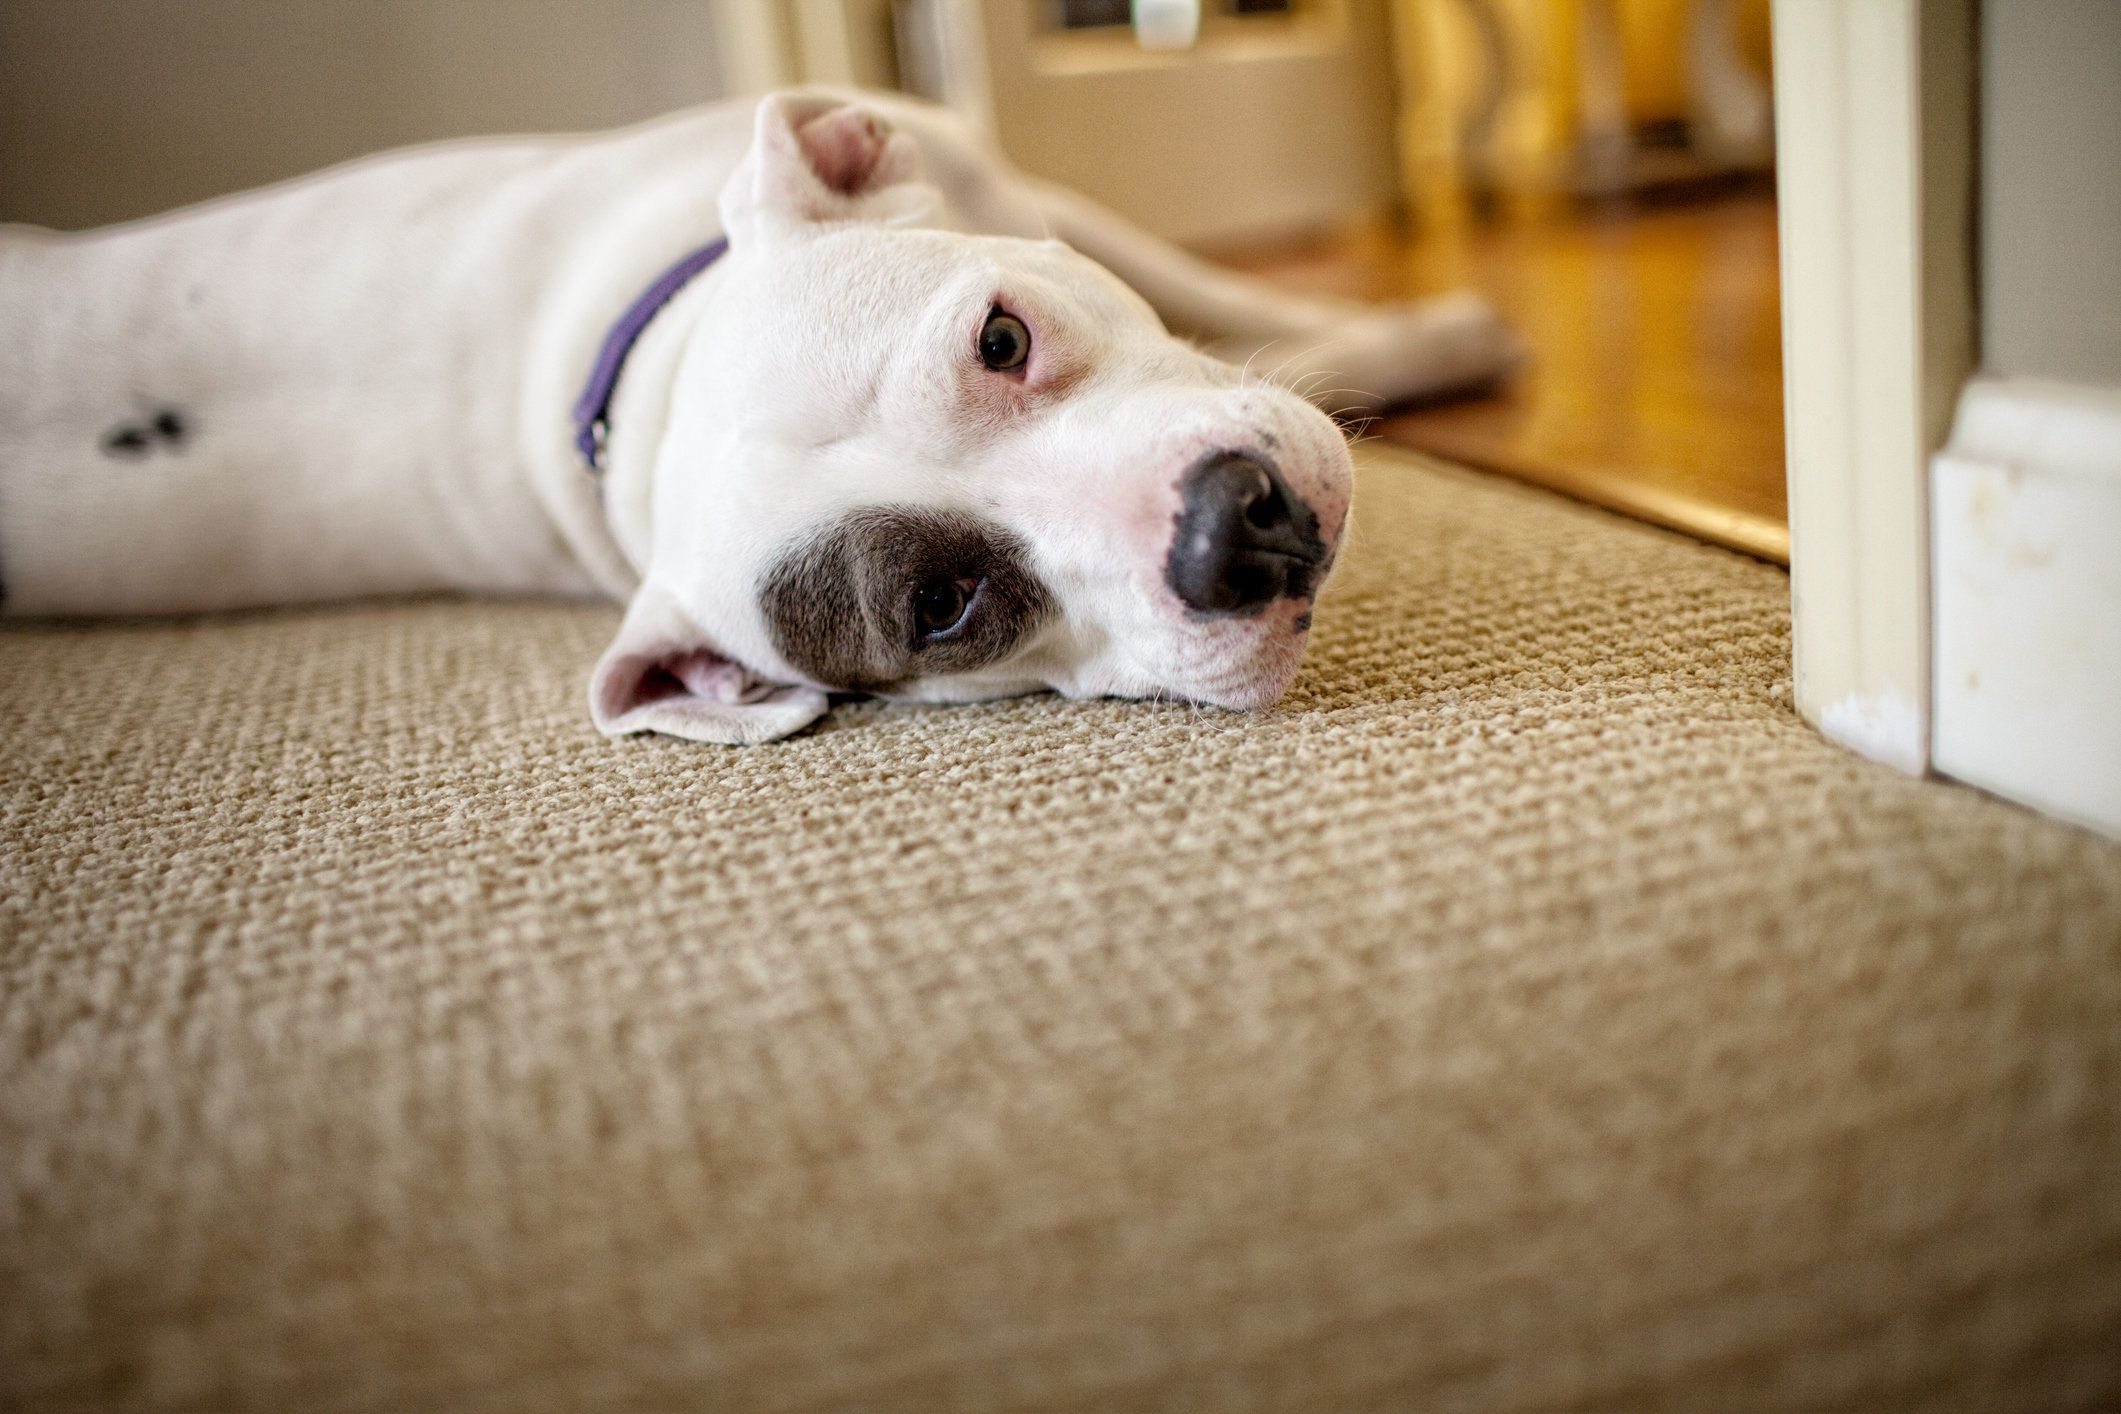 Low angle shot of a relaxed white pit bull dog on carpet